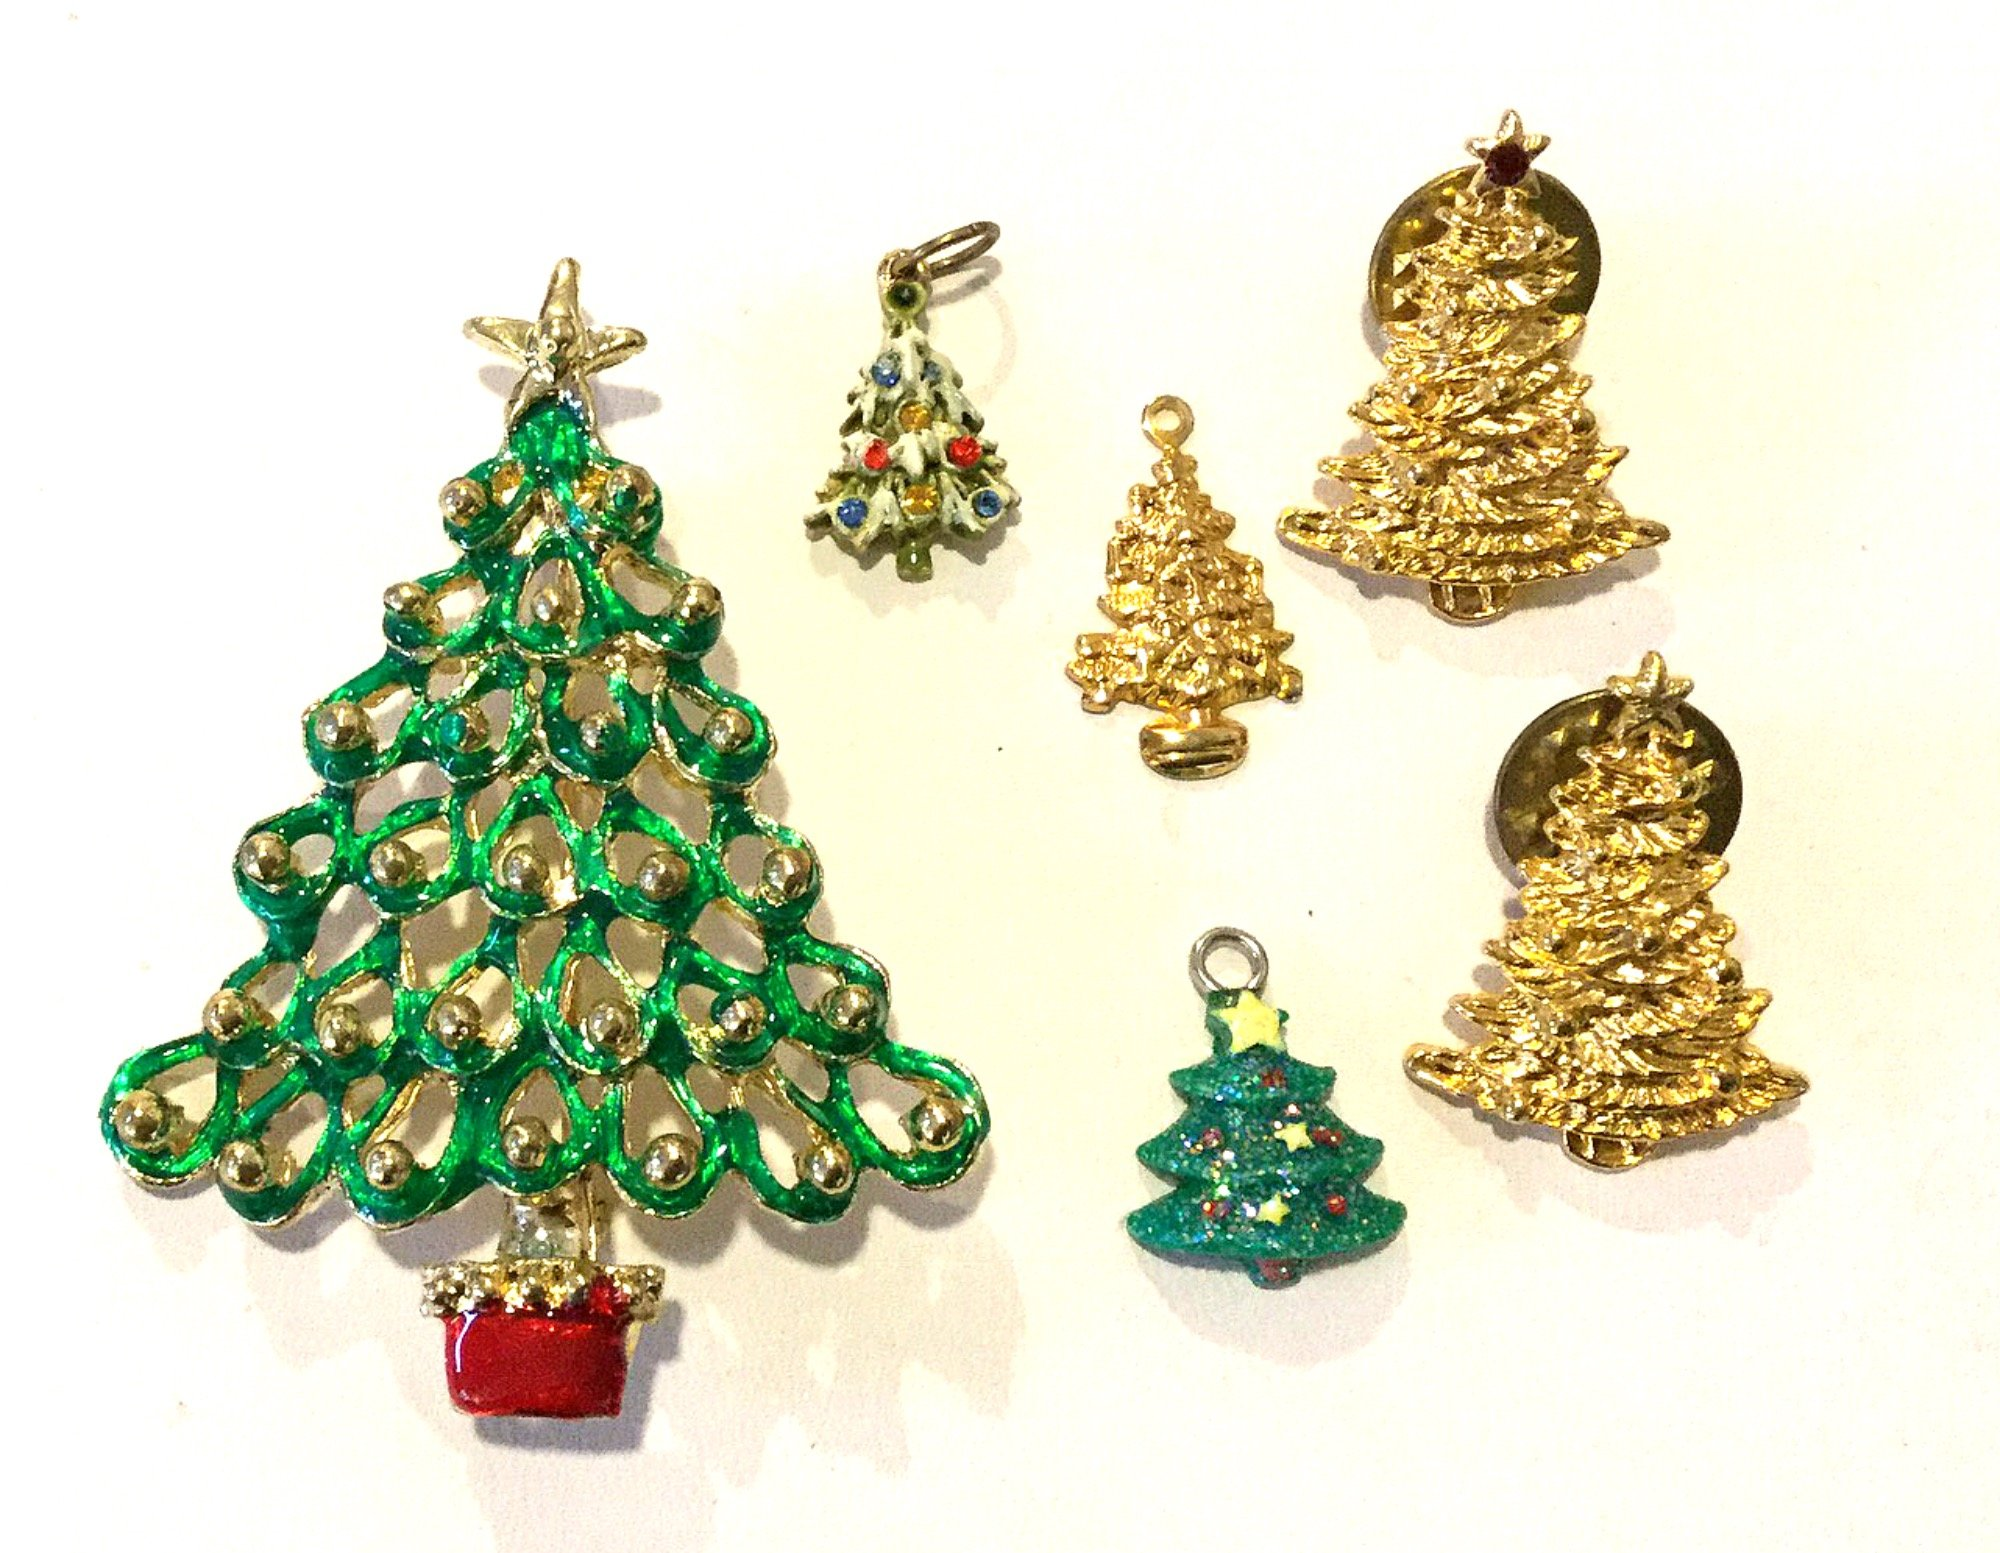 Christmas Trees SIX Vintage Rhinestone Enamel Costume Jewelry Pins and Charm Pendants